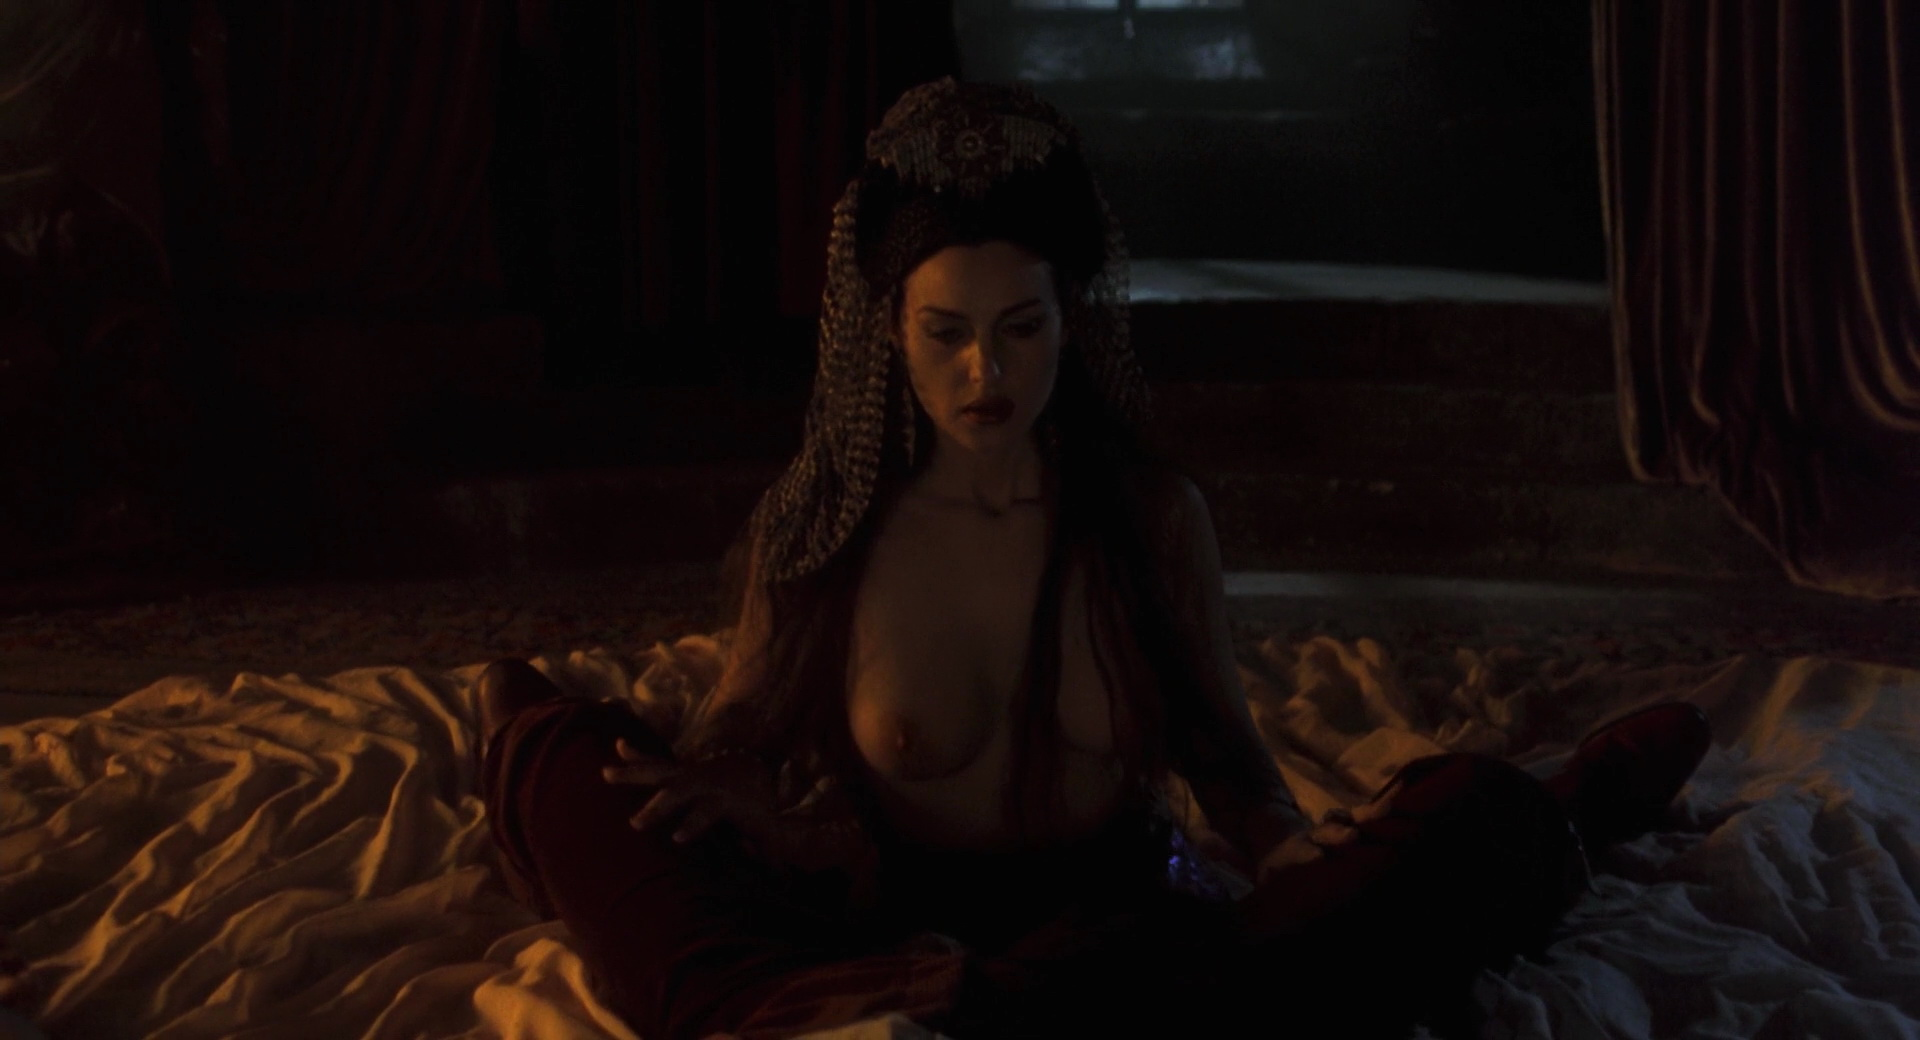 Monica belluci topless vampire pictures — photo 11